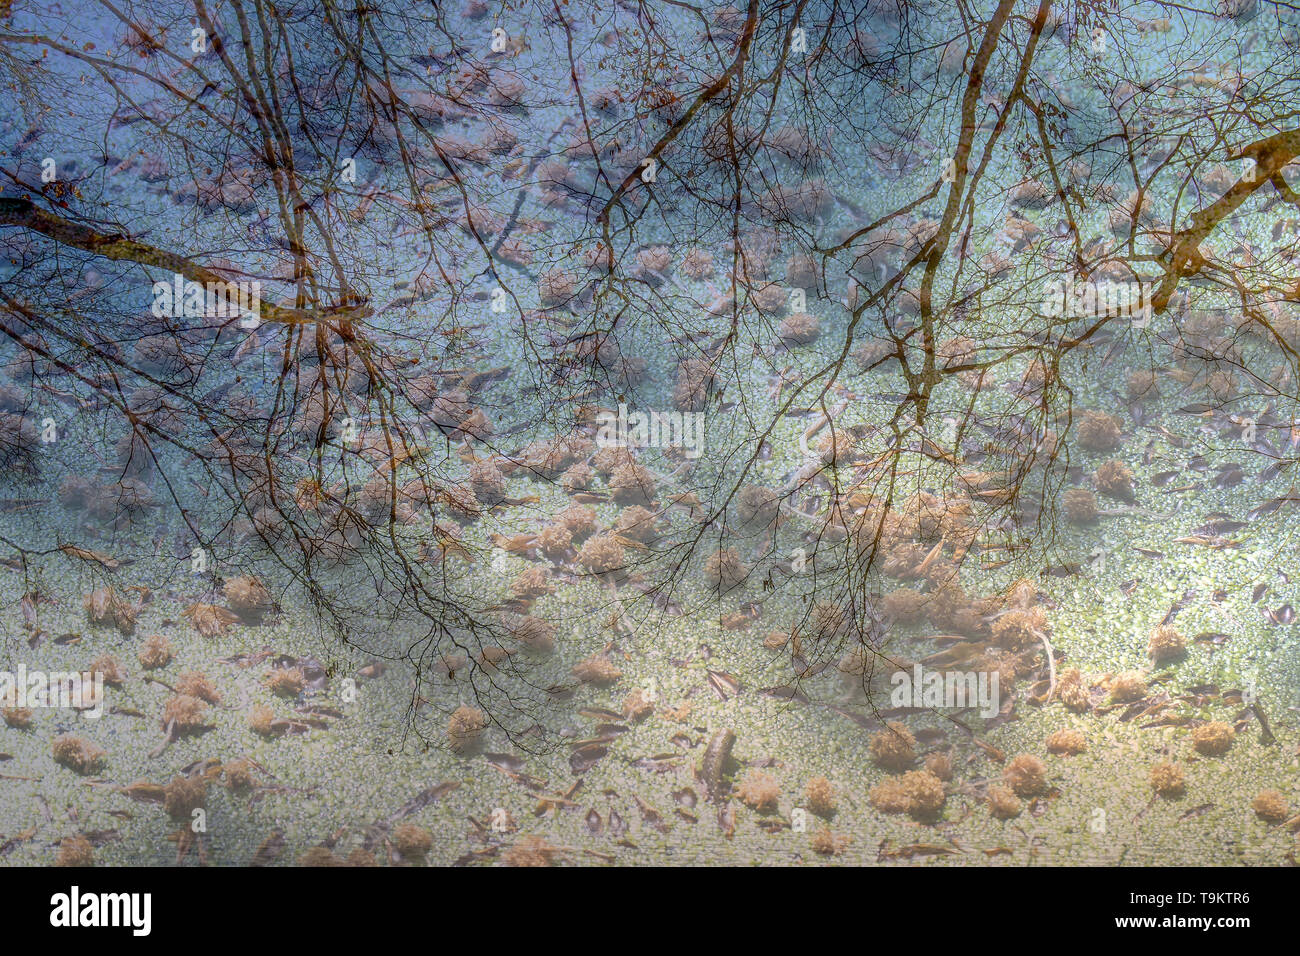 Double exposure image with frozen ice, duck weed and a trees in the sky. - Stock Image